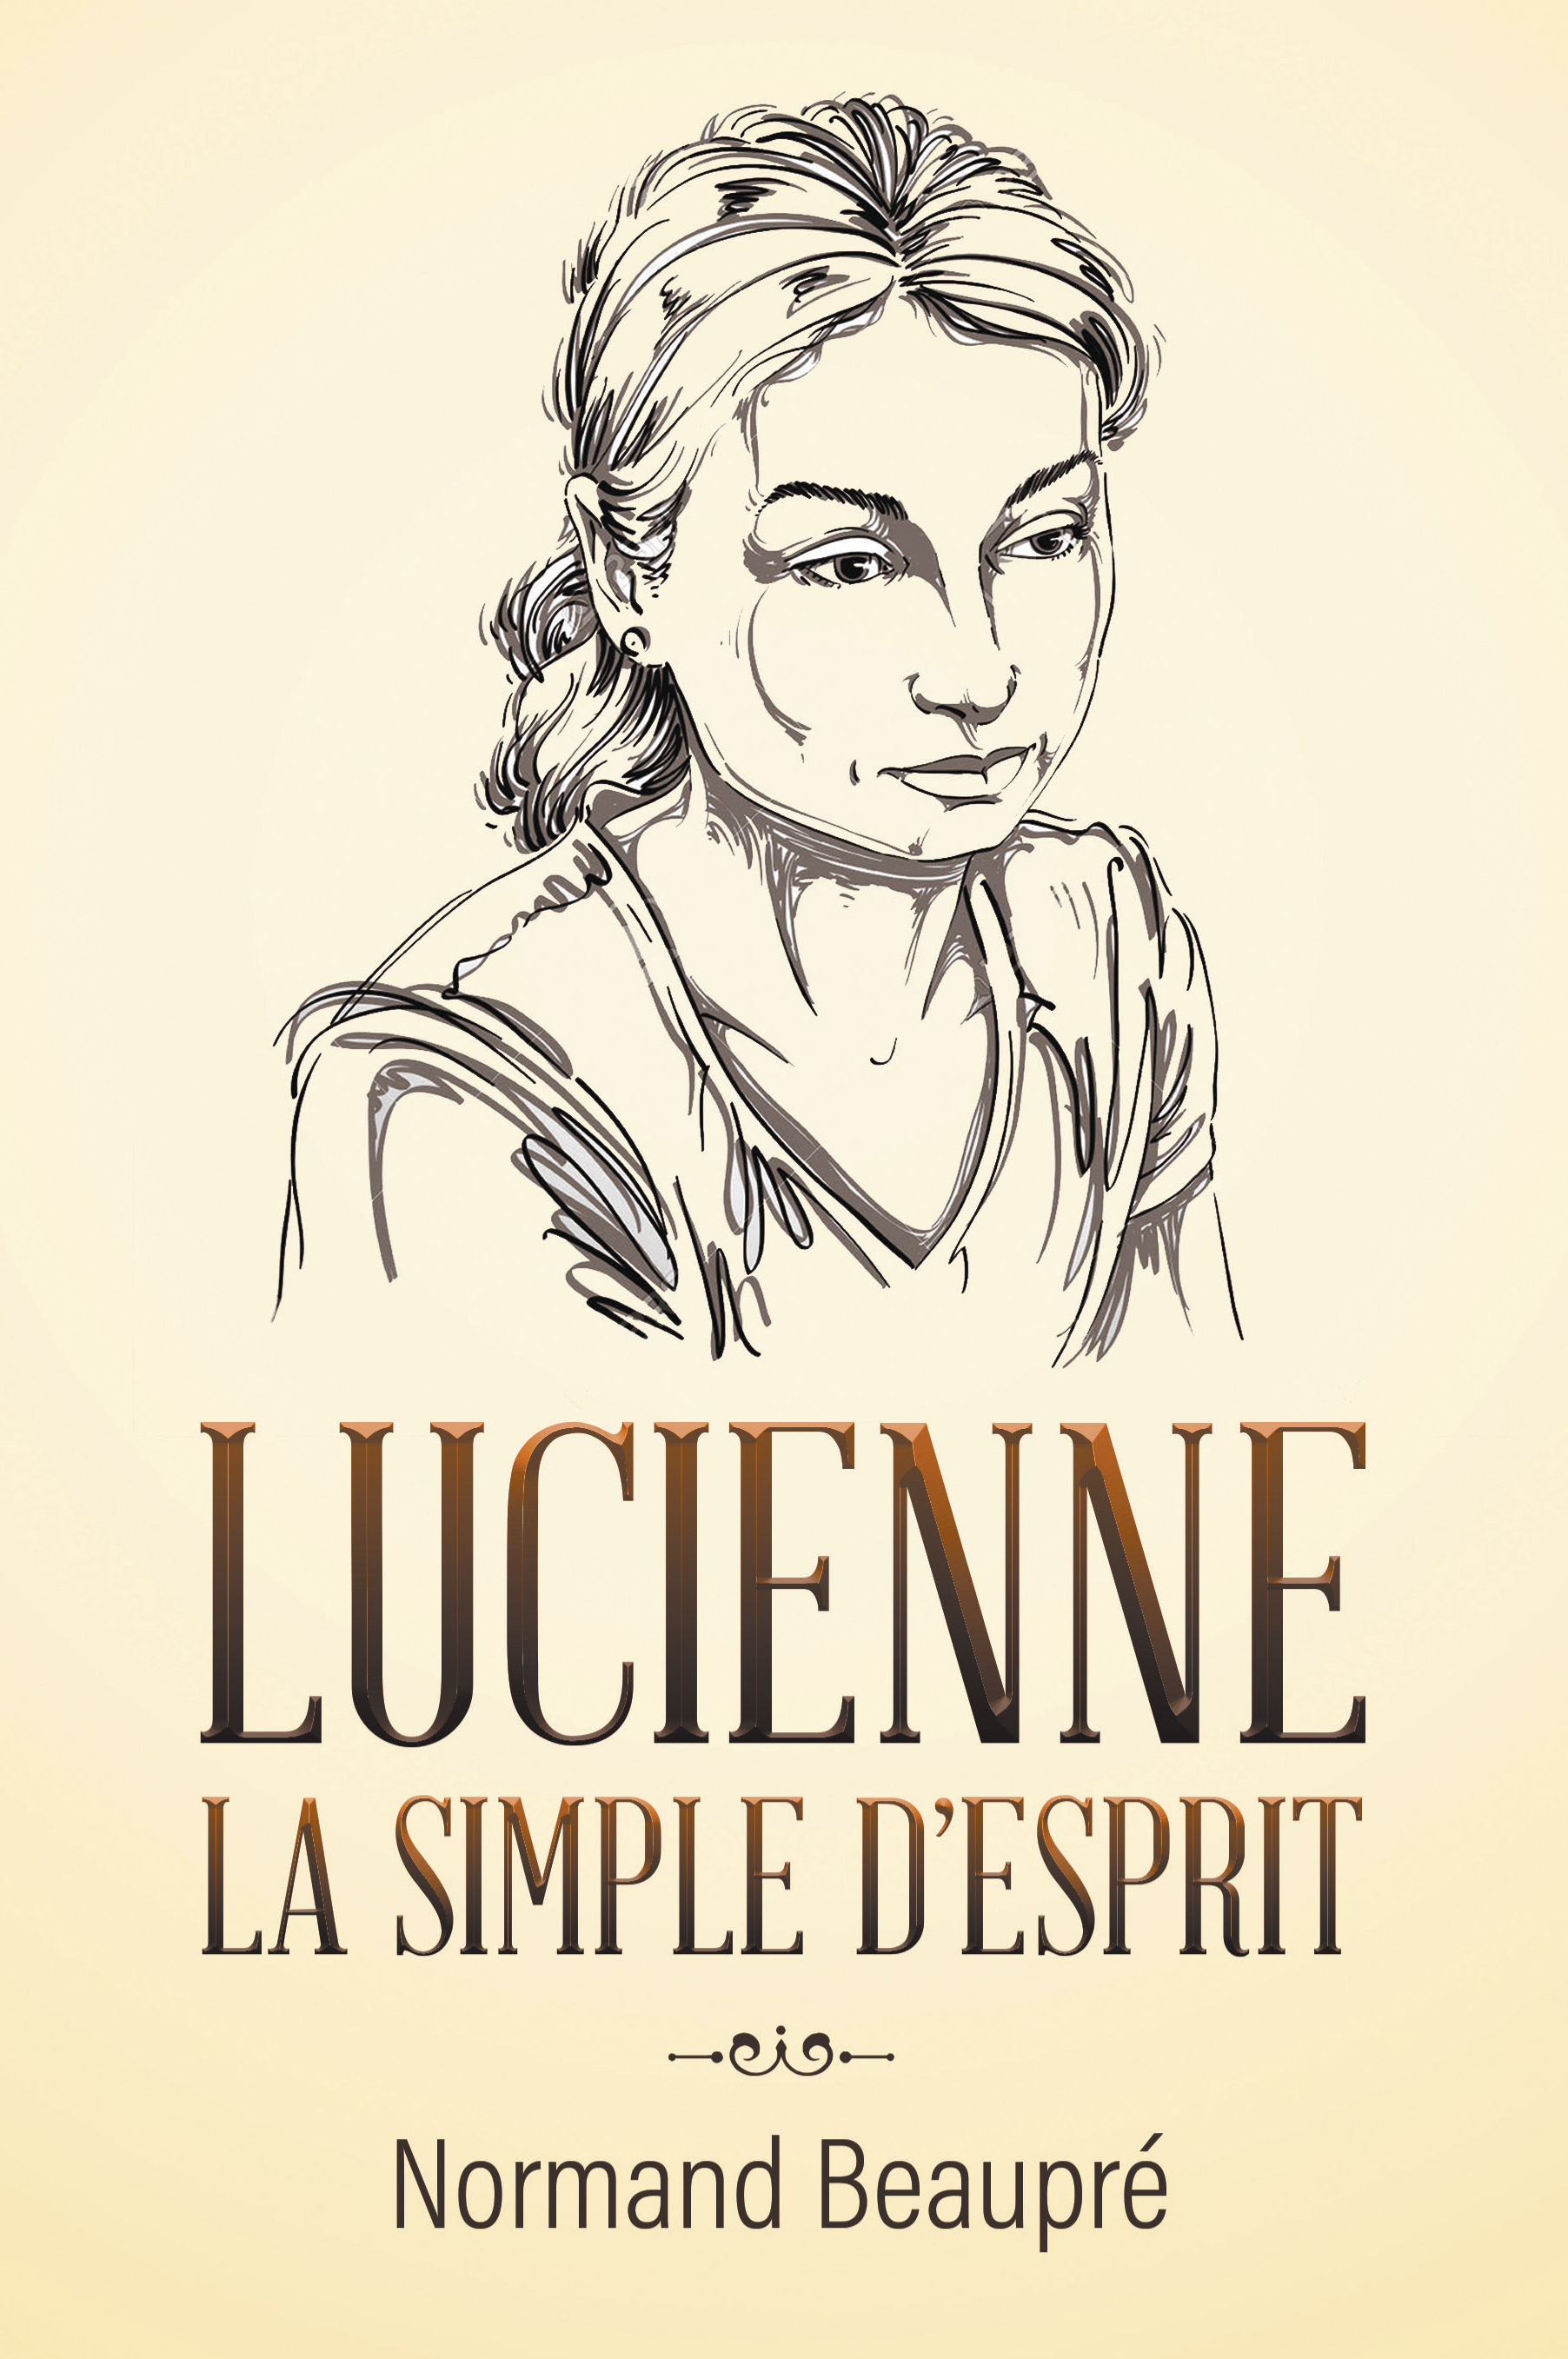 Lucienne, la simple d'esprit